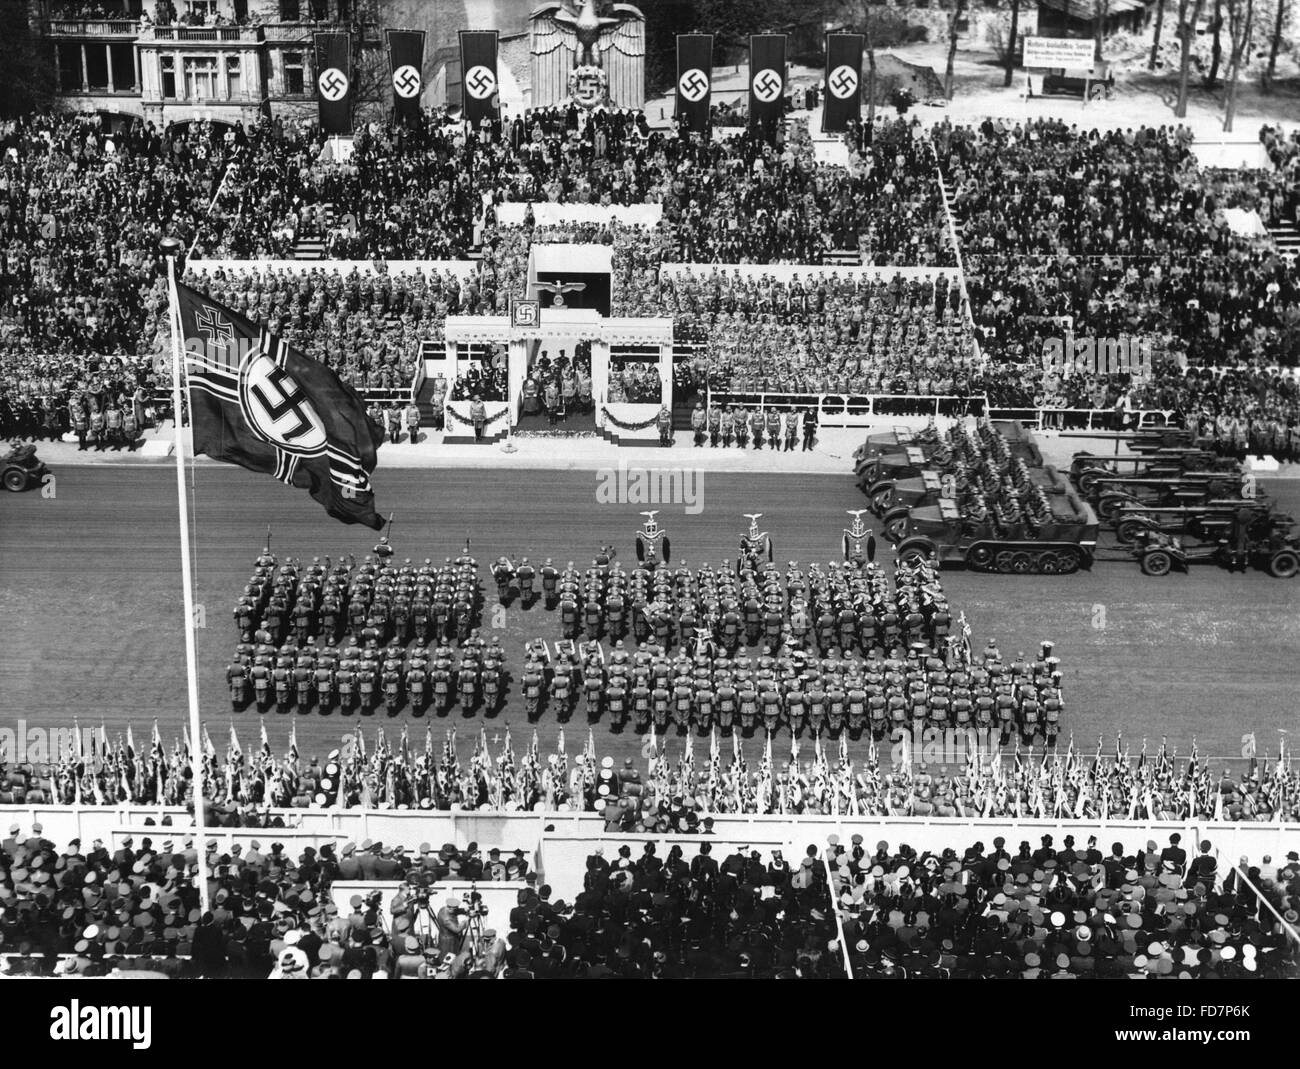 Military parade of the Wehrmacht on the occasion of Hitler's birthday in Berlin, 1939 - Stock Image